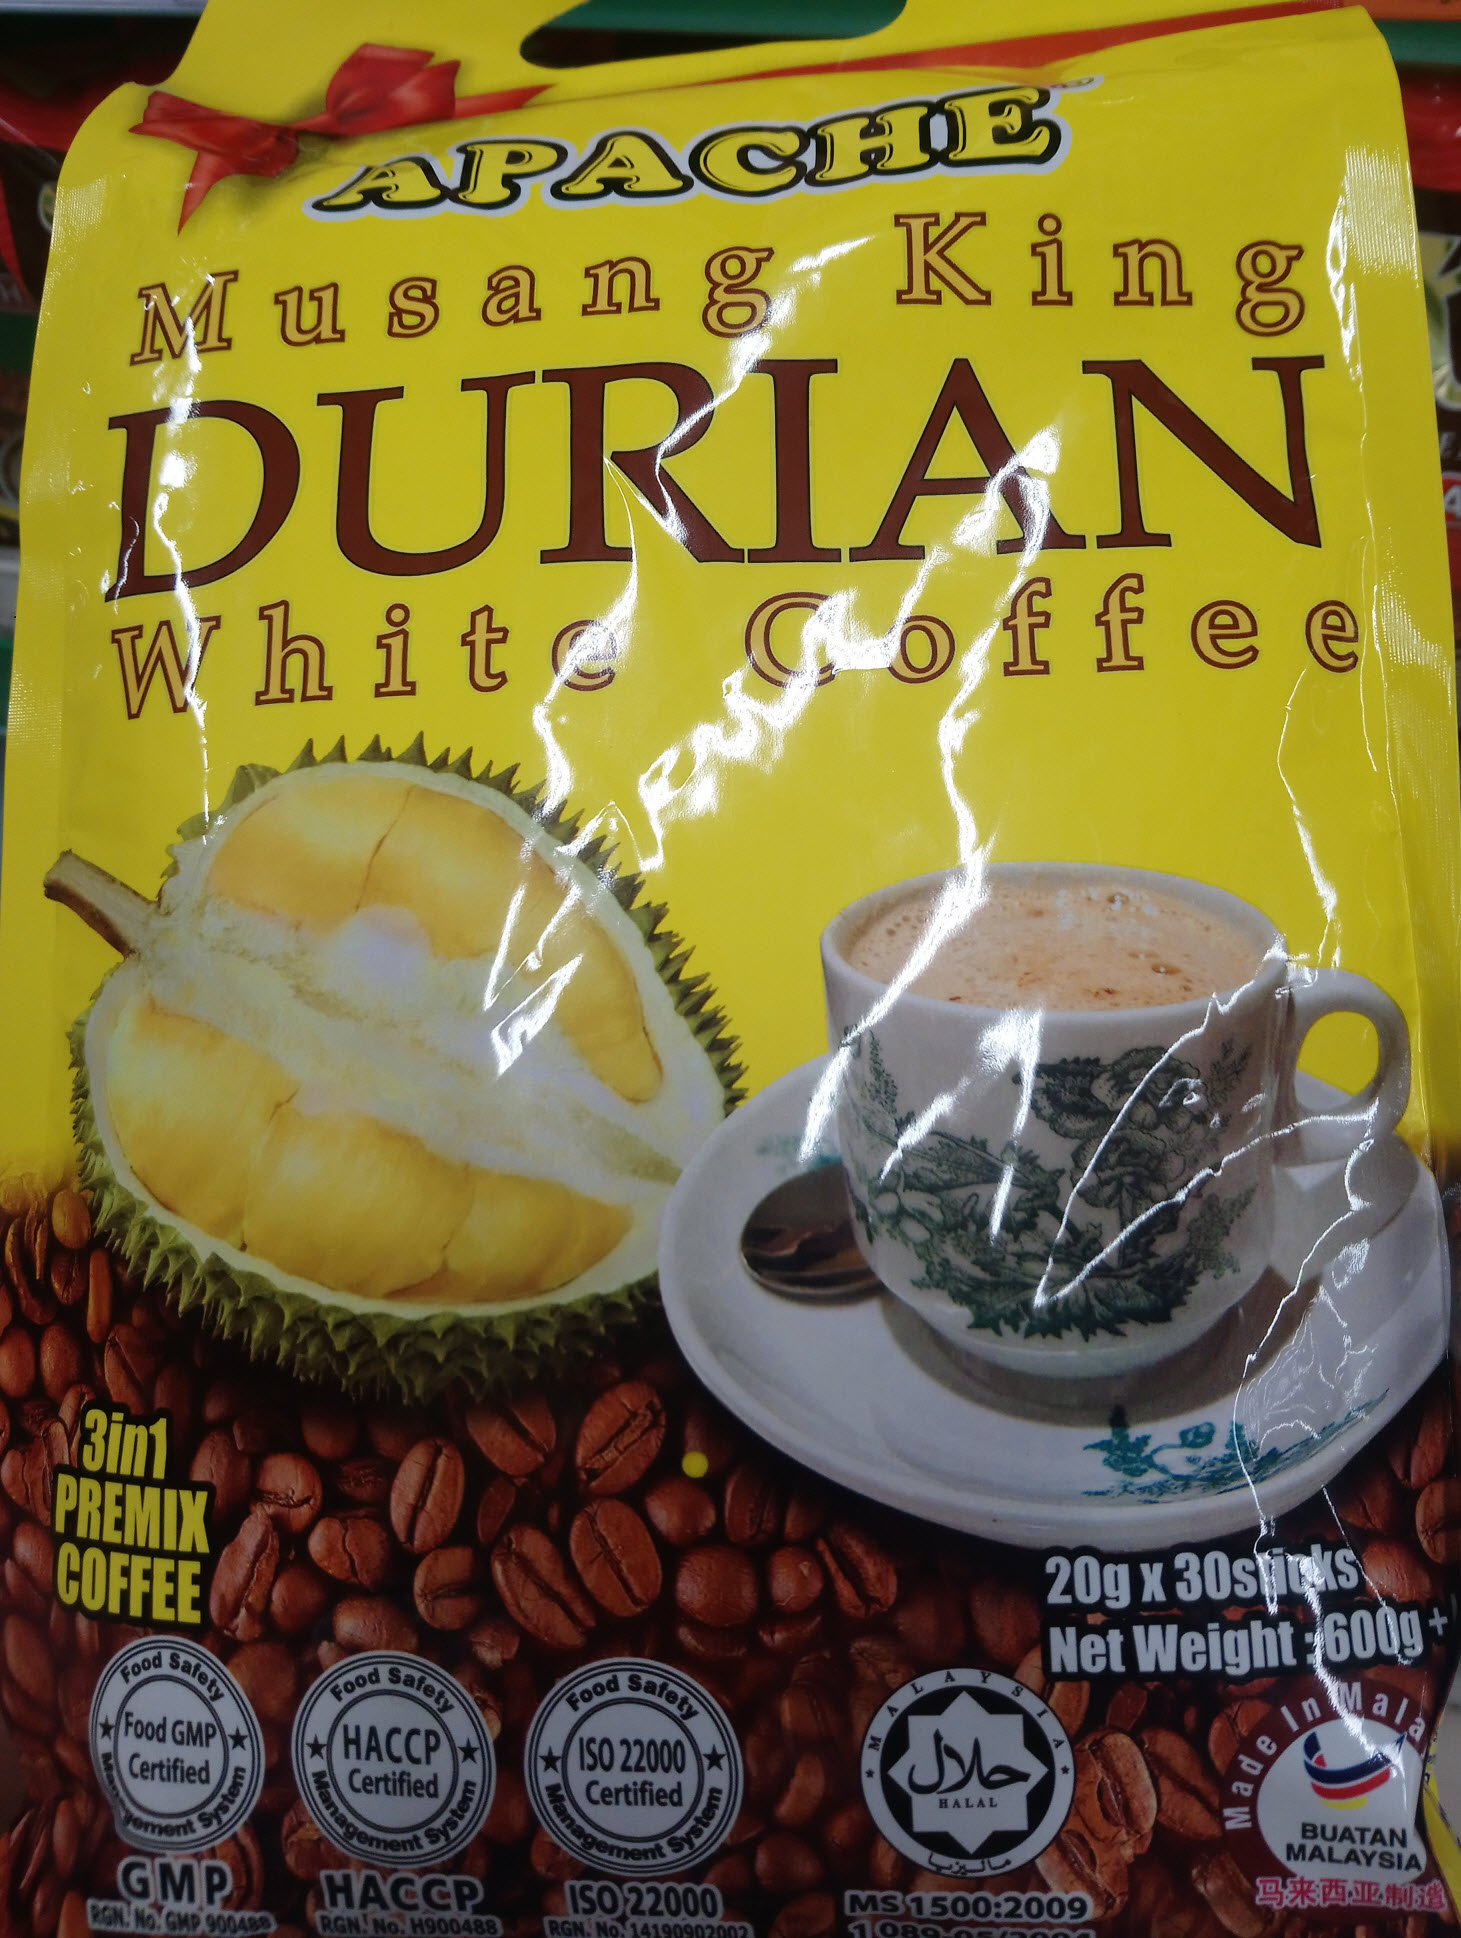 Apache Musang King Durian White Coffee 3 in 1 Premix (20g x 30 sticks)